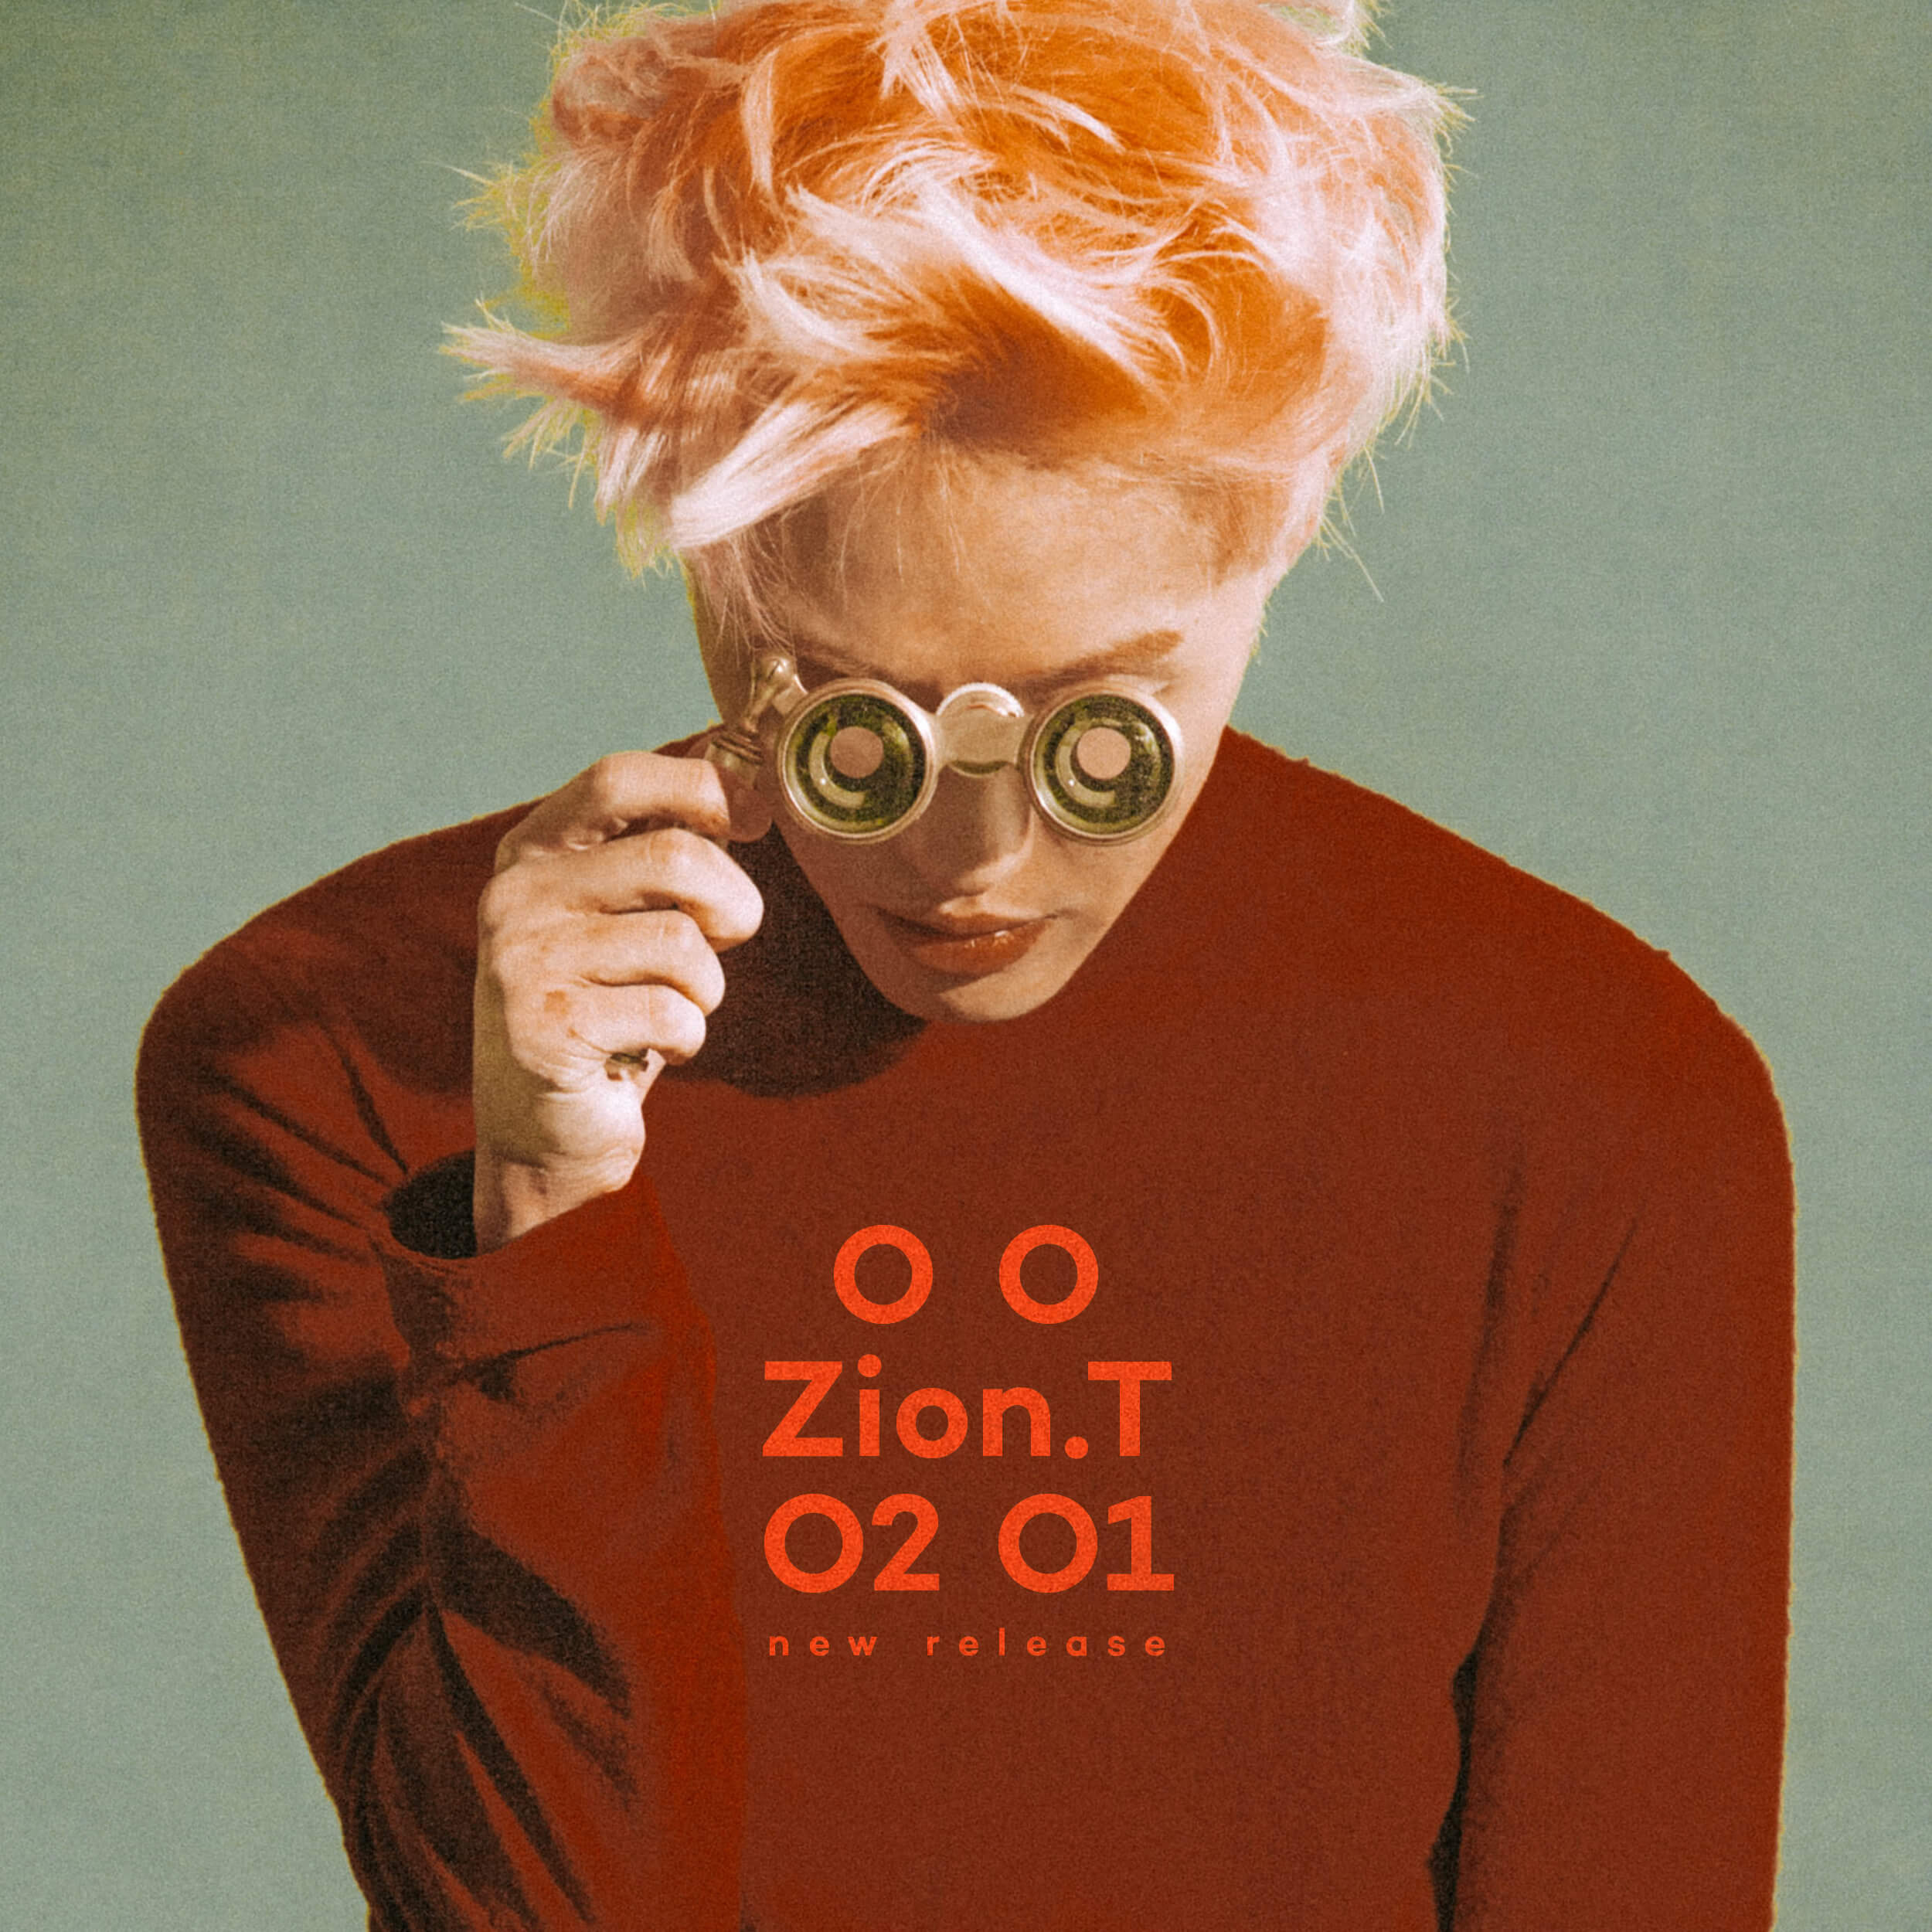 Zion.T Goes Vintage In New Comeback Teaser